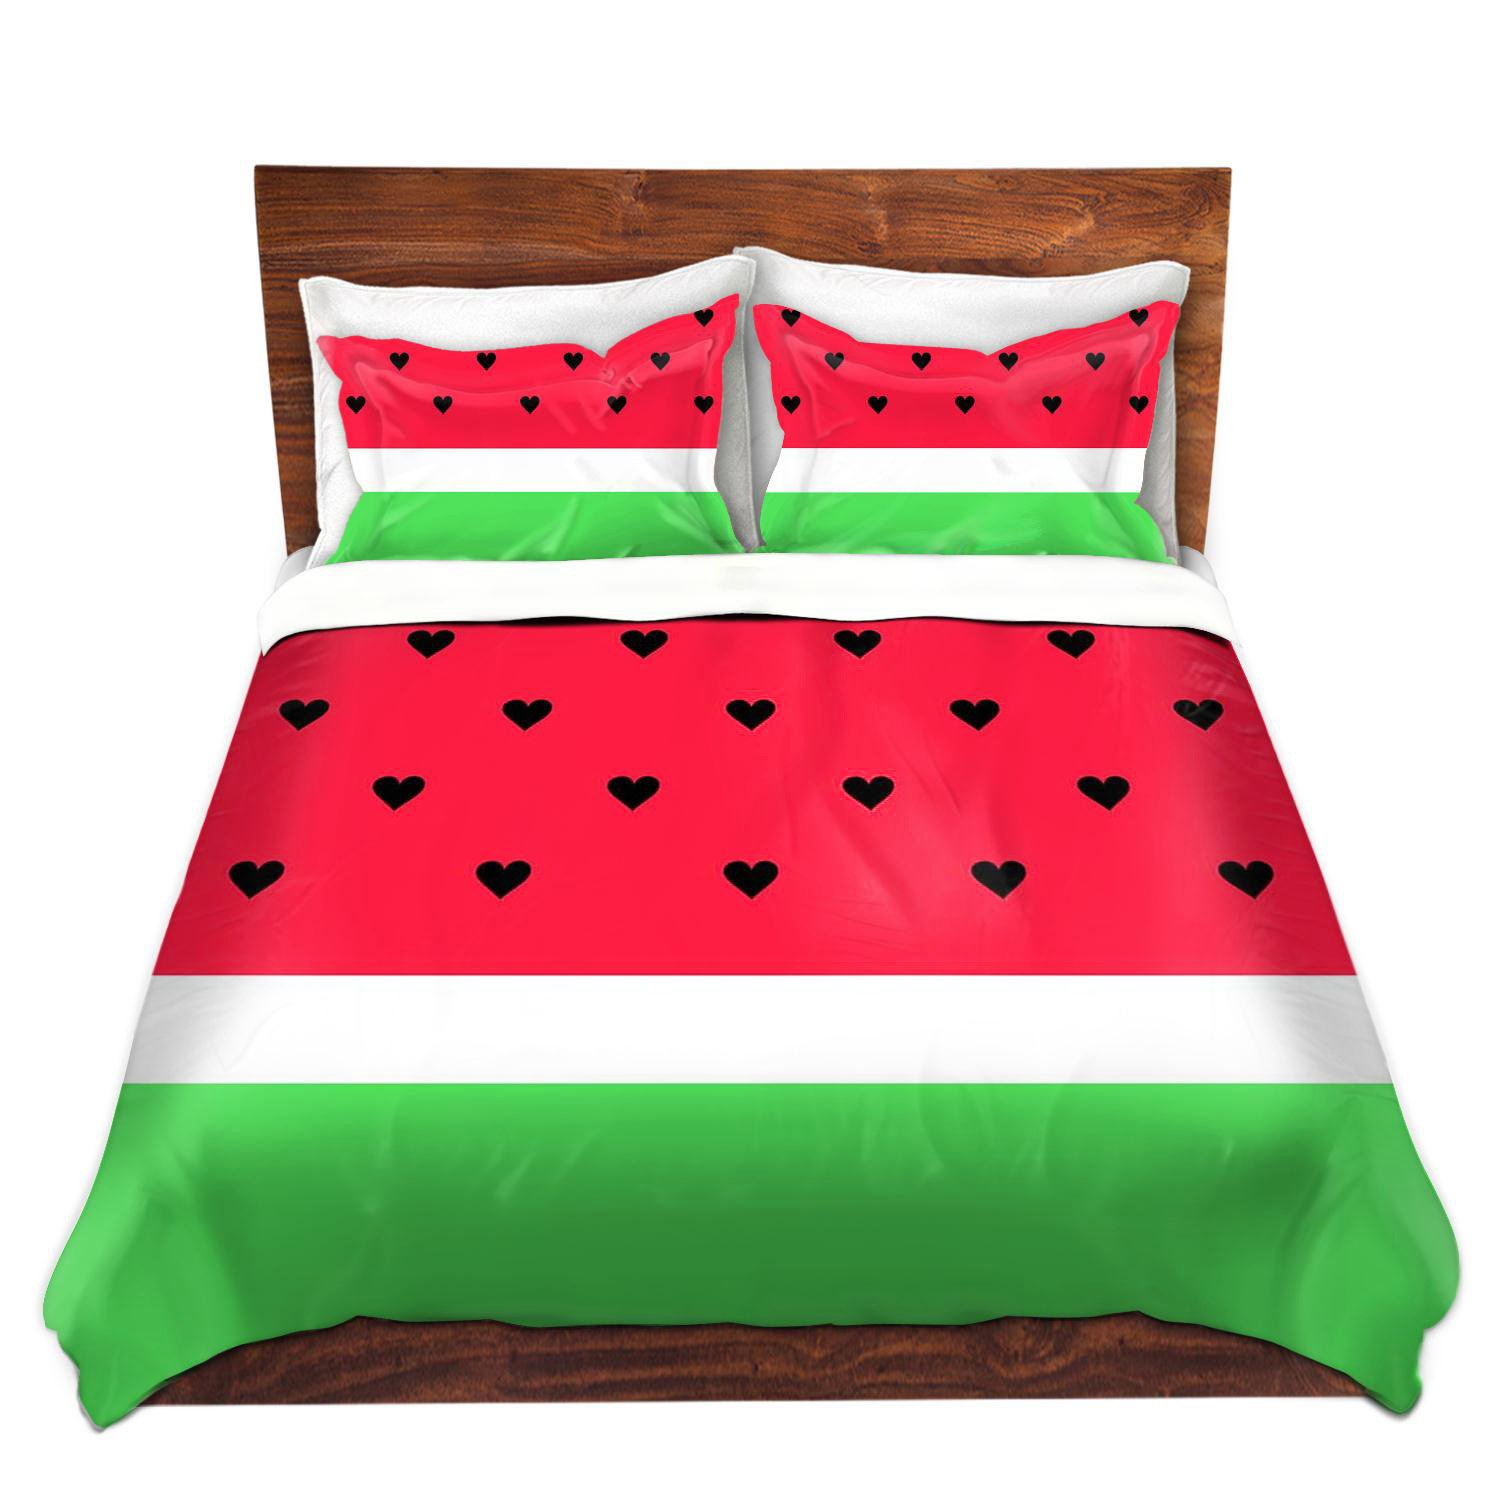 DiaNoche Designs Organic Saturation I Love Watermelon Brushed Twill Home Decor Bedding Cover, 8 King Duvet Sham Set